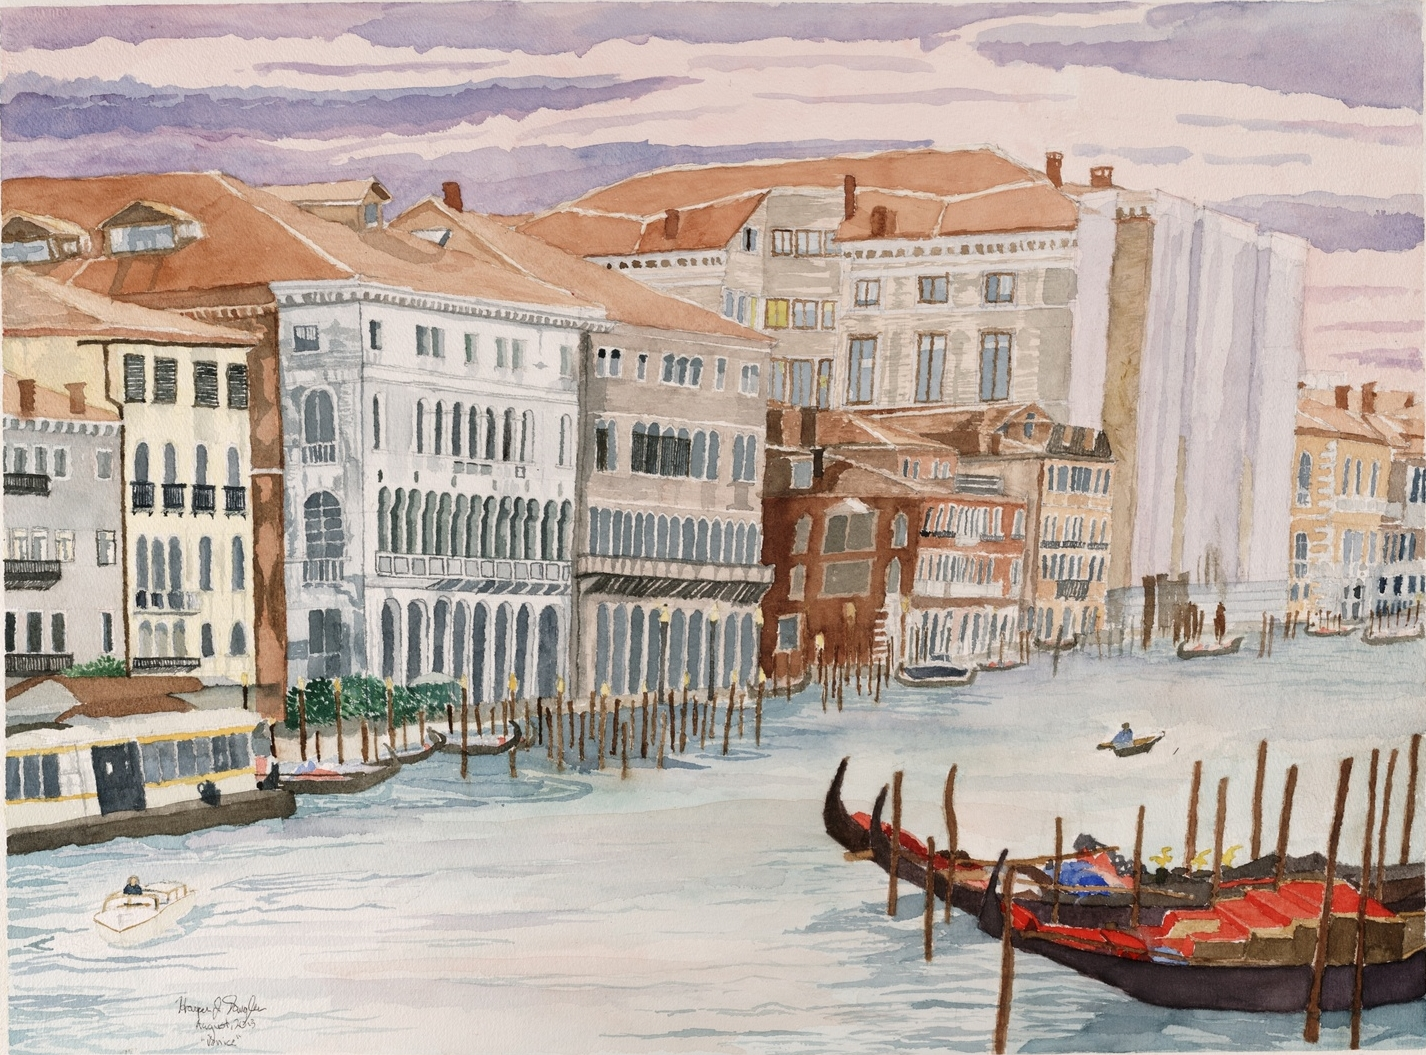 "Venice!, 22.5"" by 30"", watercolor on paper"